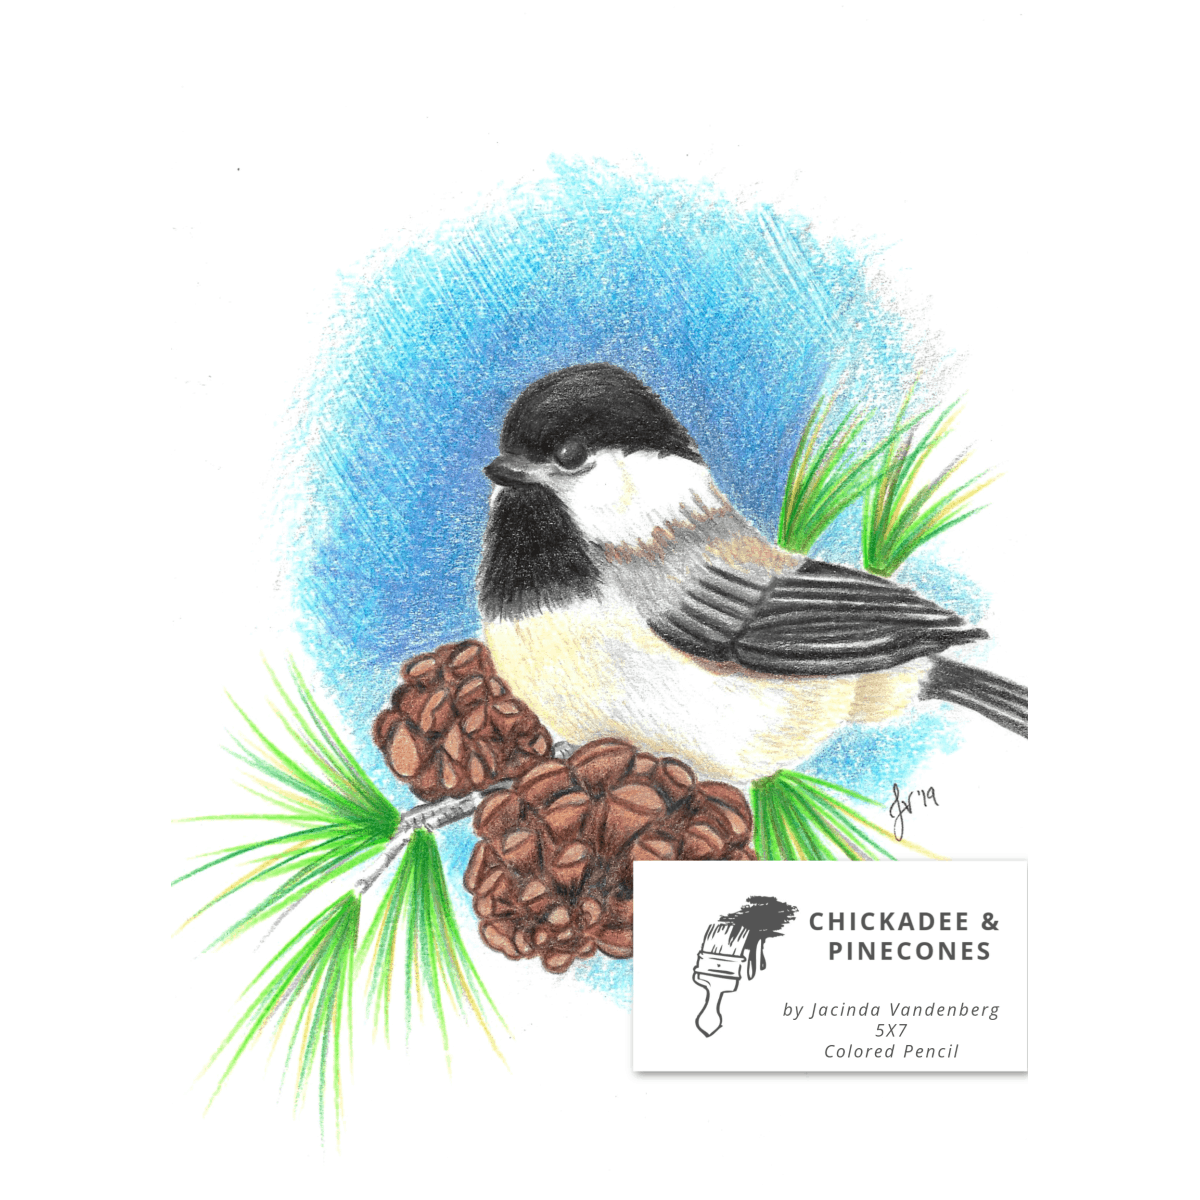 5x7 Chickadee & Pinecones in Colored Pencil